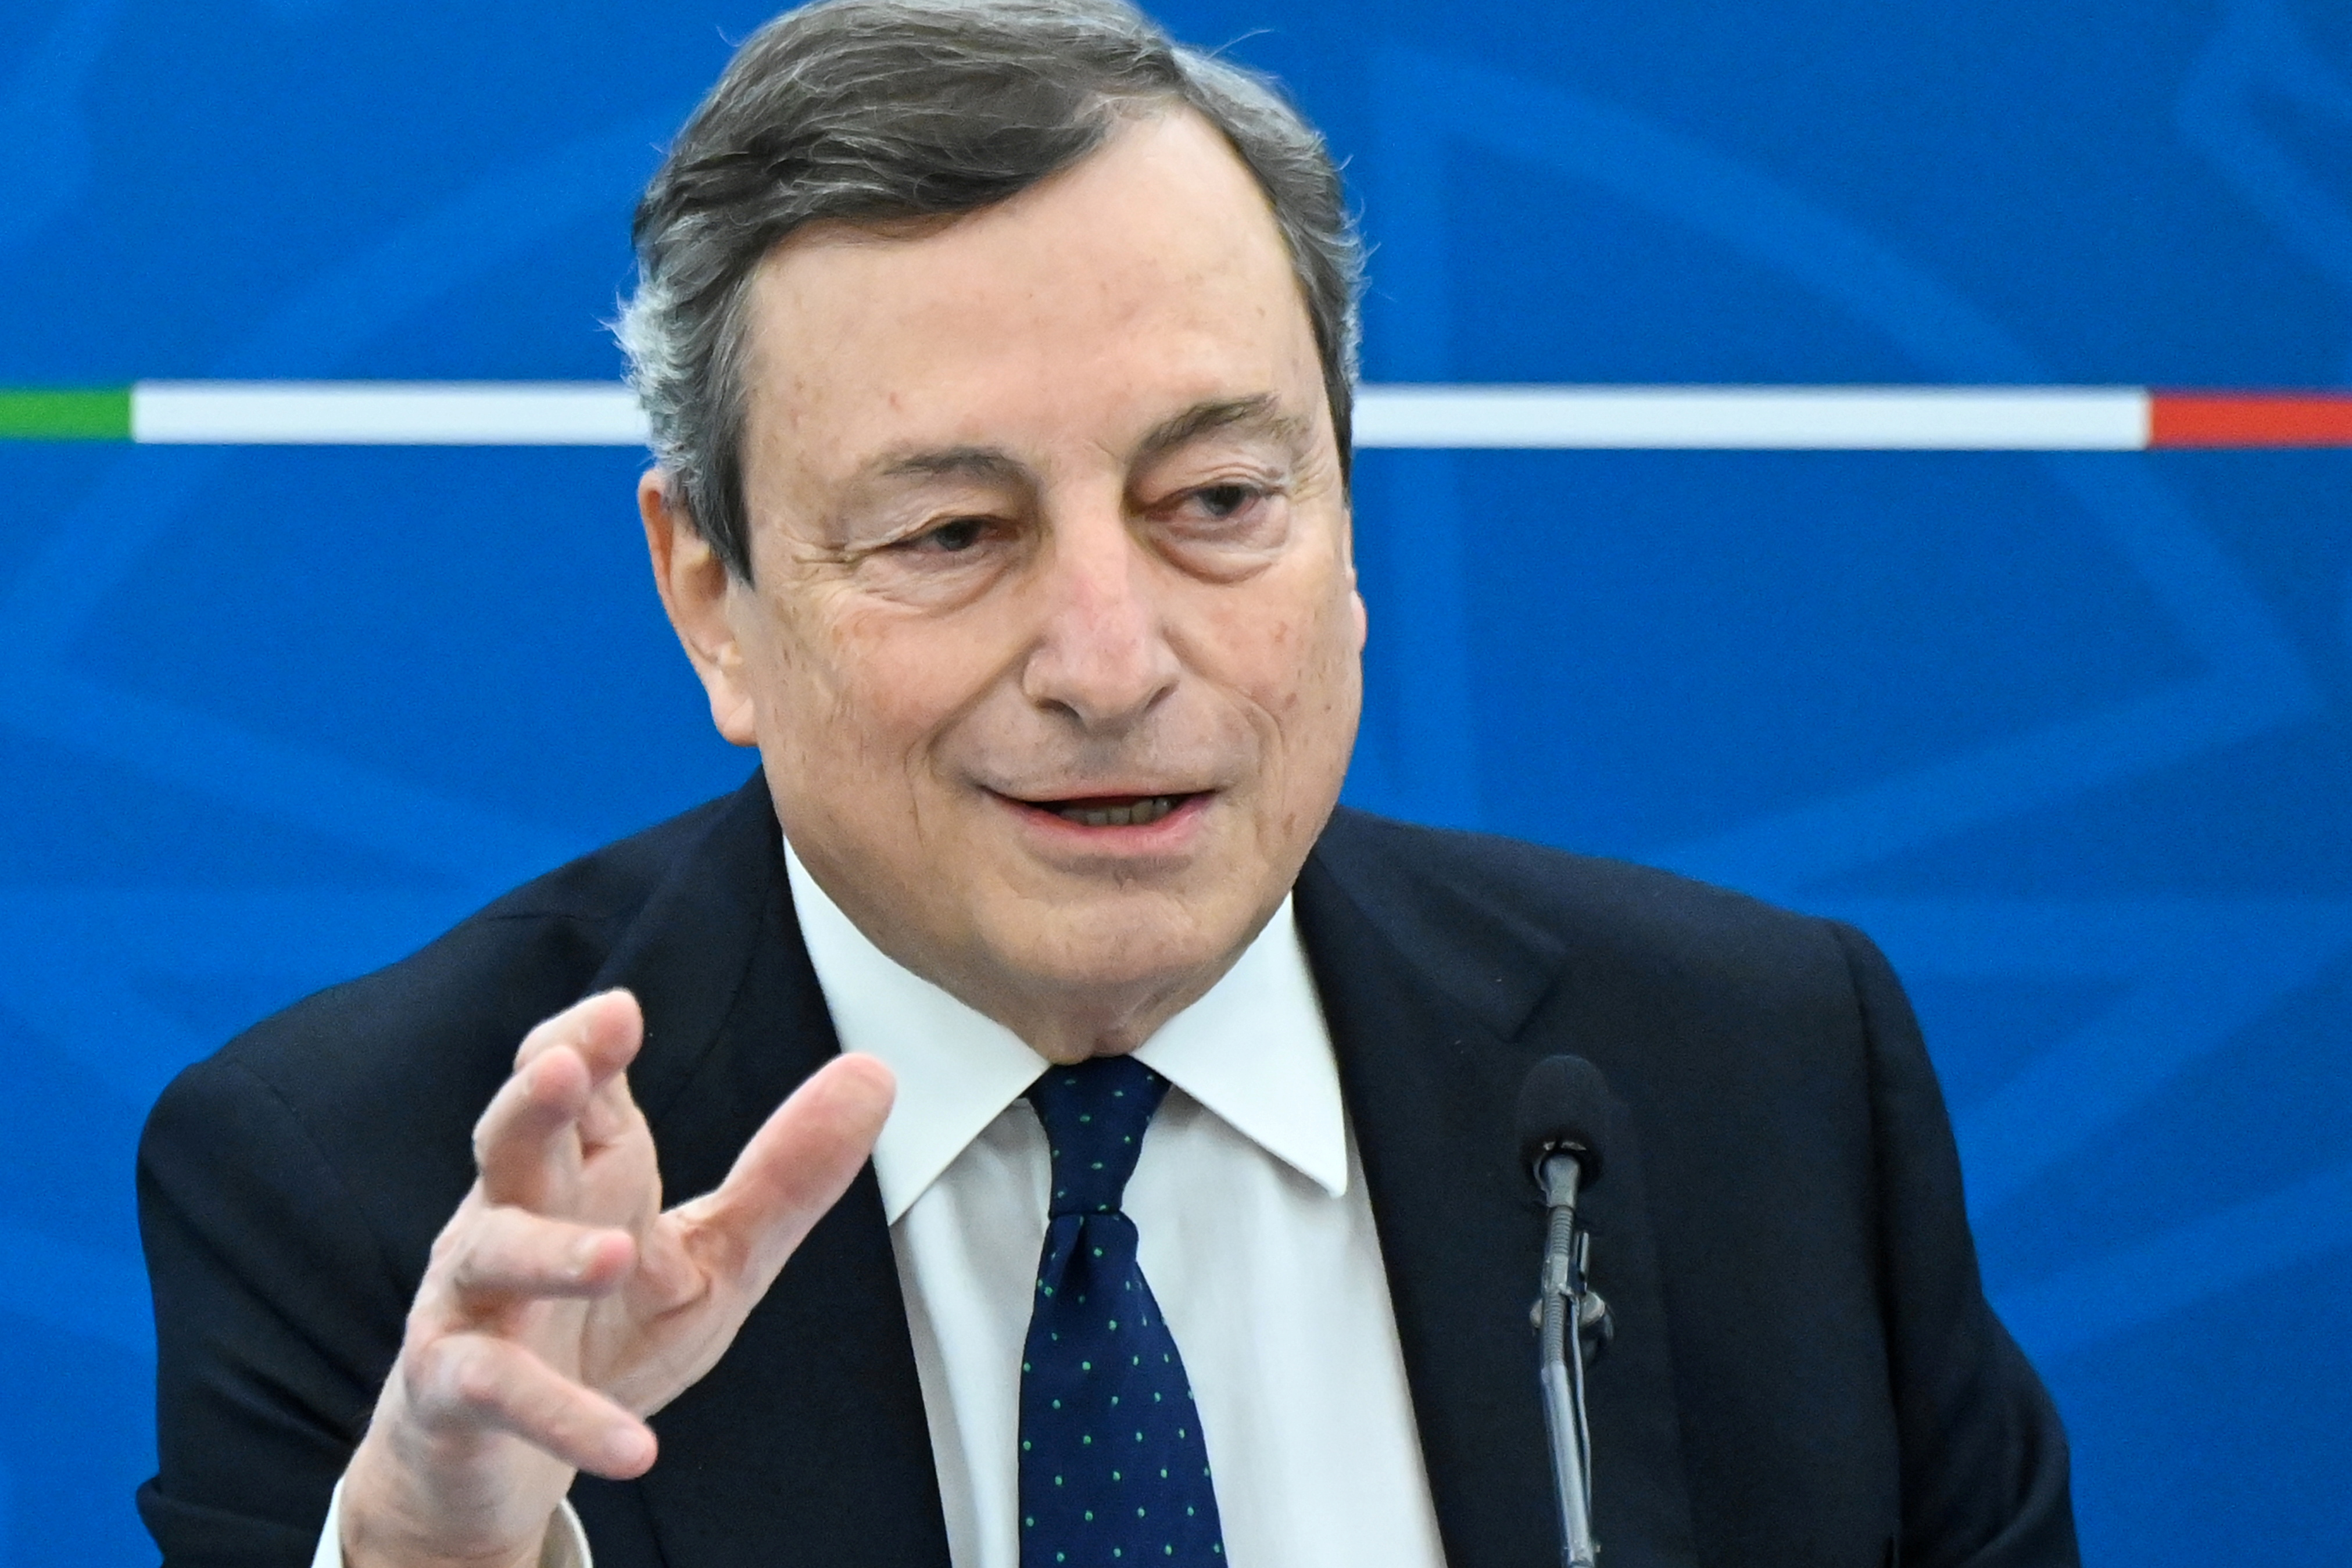 Italy's Prime Minister Mario Draghi speaks during a news conference after a cabinet meeting in Rome, Italy, March 19, 2021. Alberto Pizzoli/Pool via REUTERS/File Photo